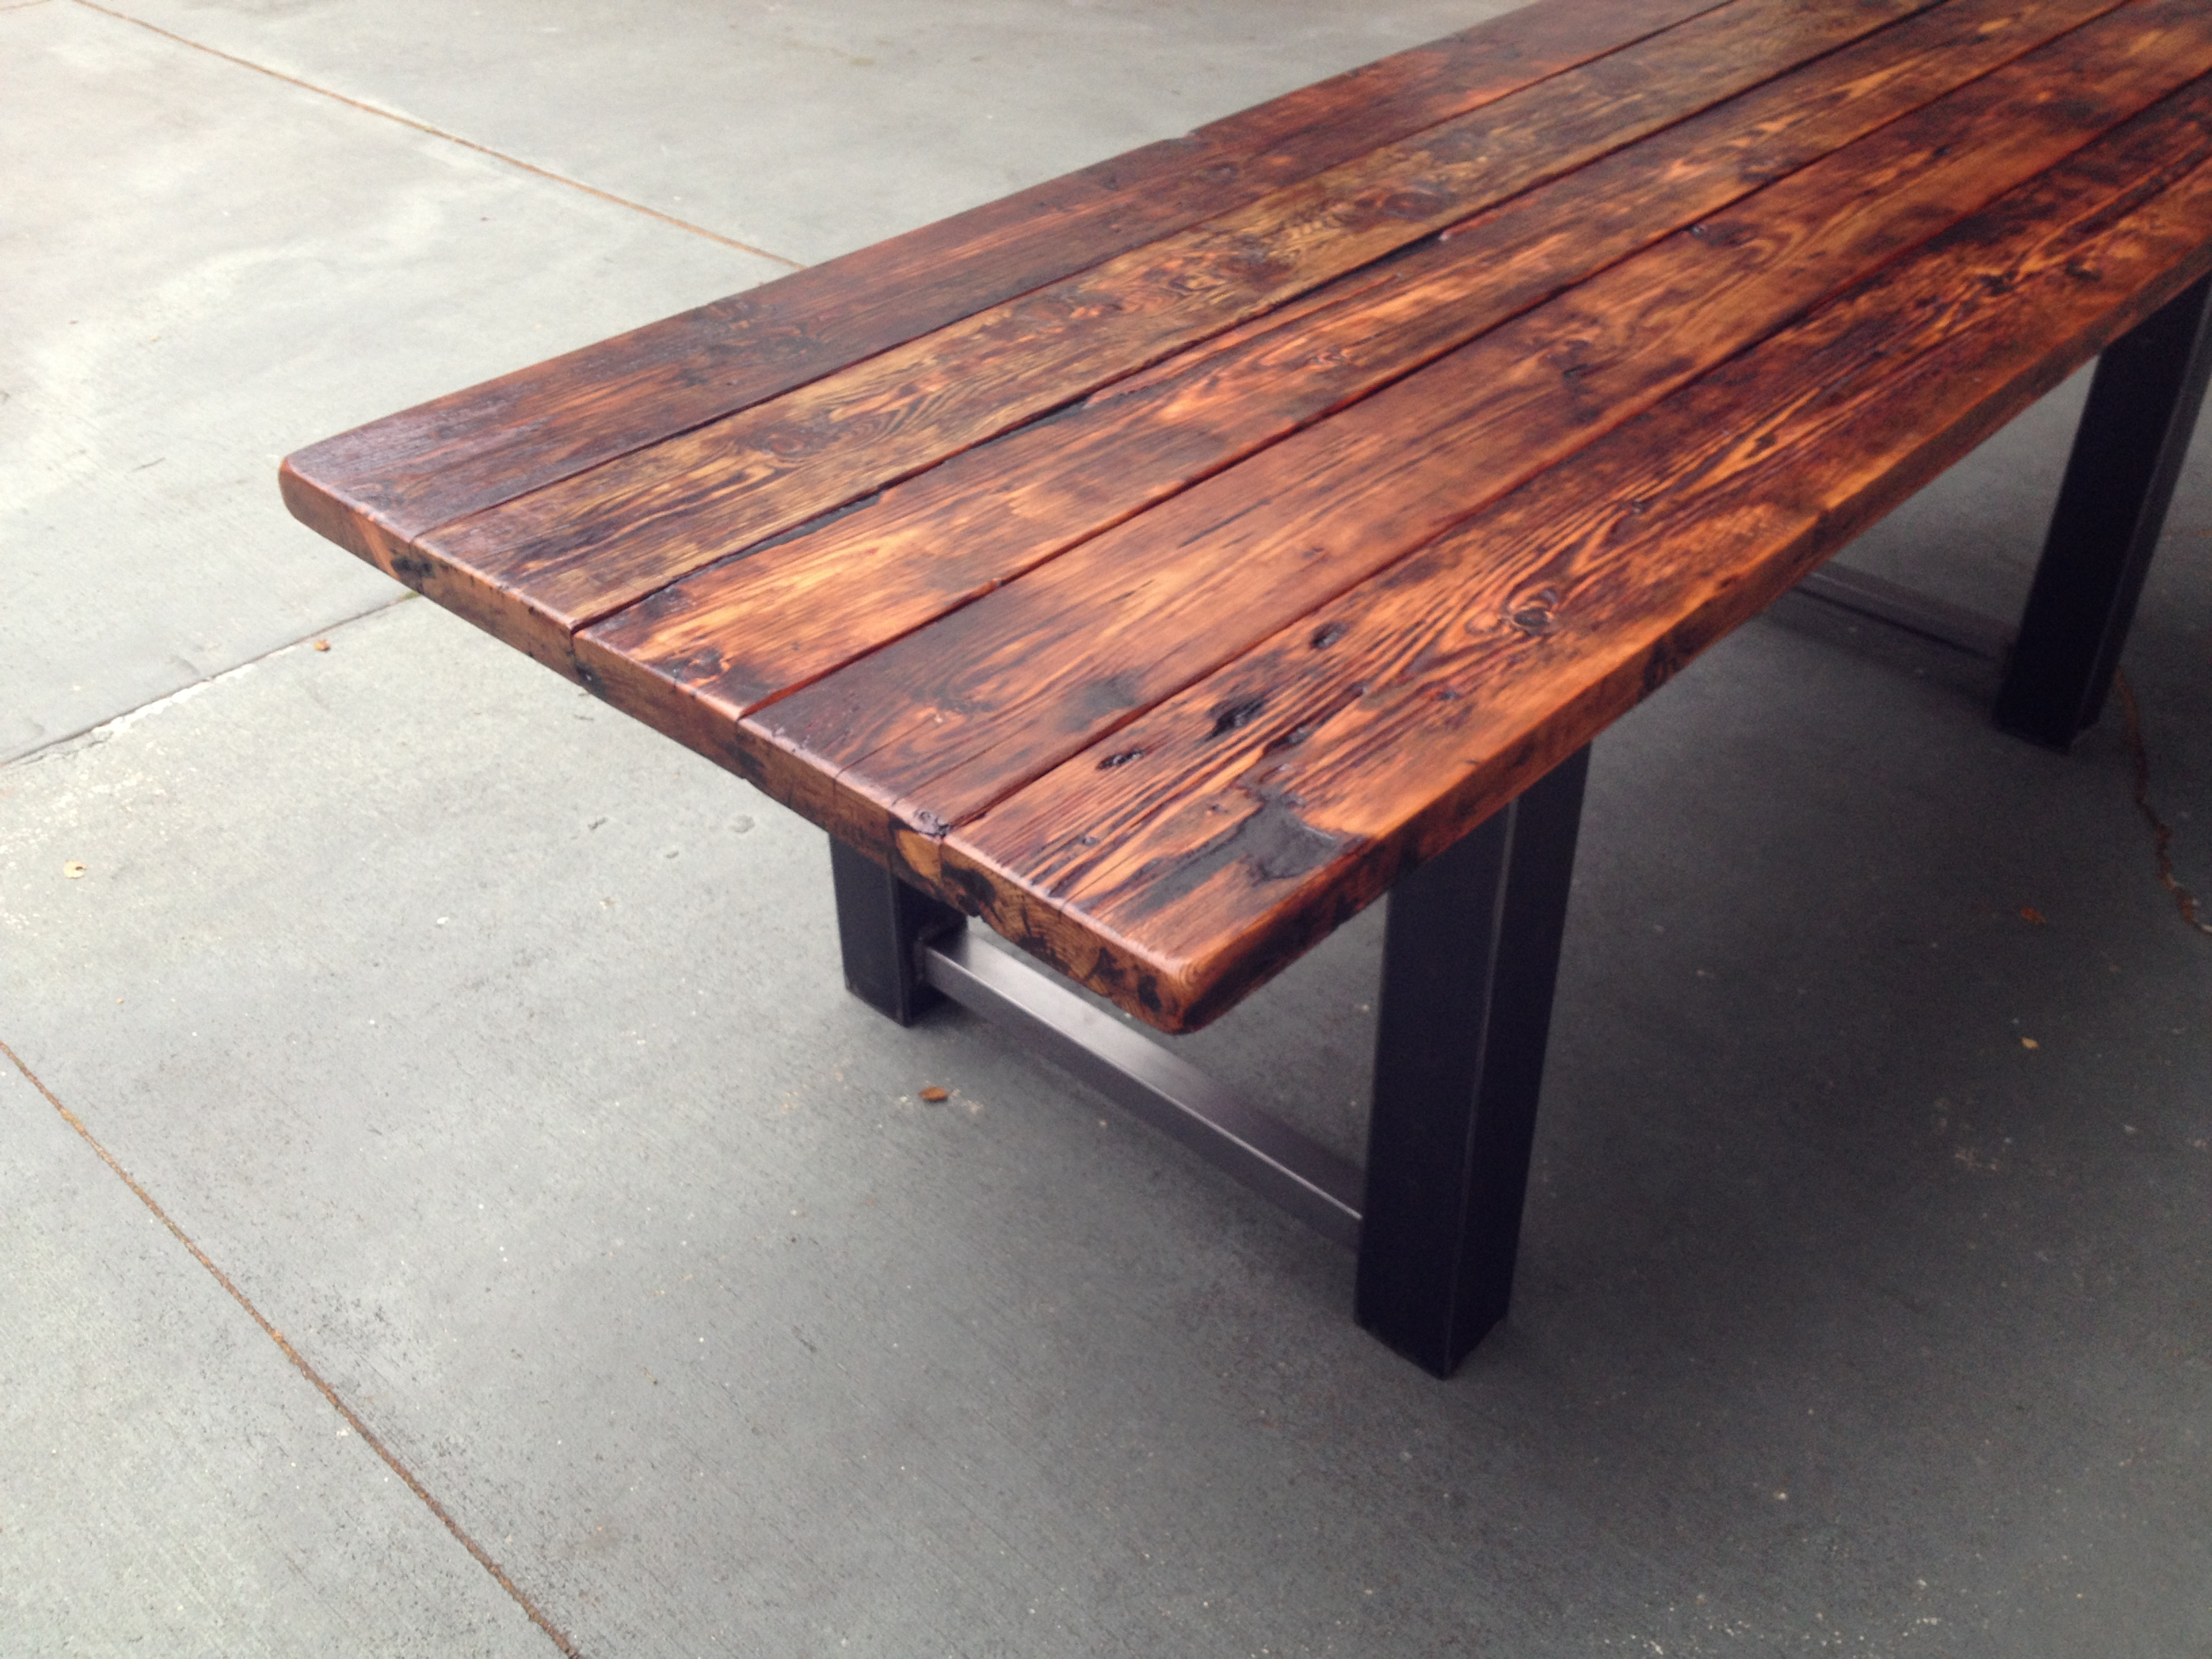 Reclaimed Wood and Metal Dining Table 8. Reclaimed Wood and Steel Dining Table   The Coastal Craftsman